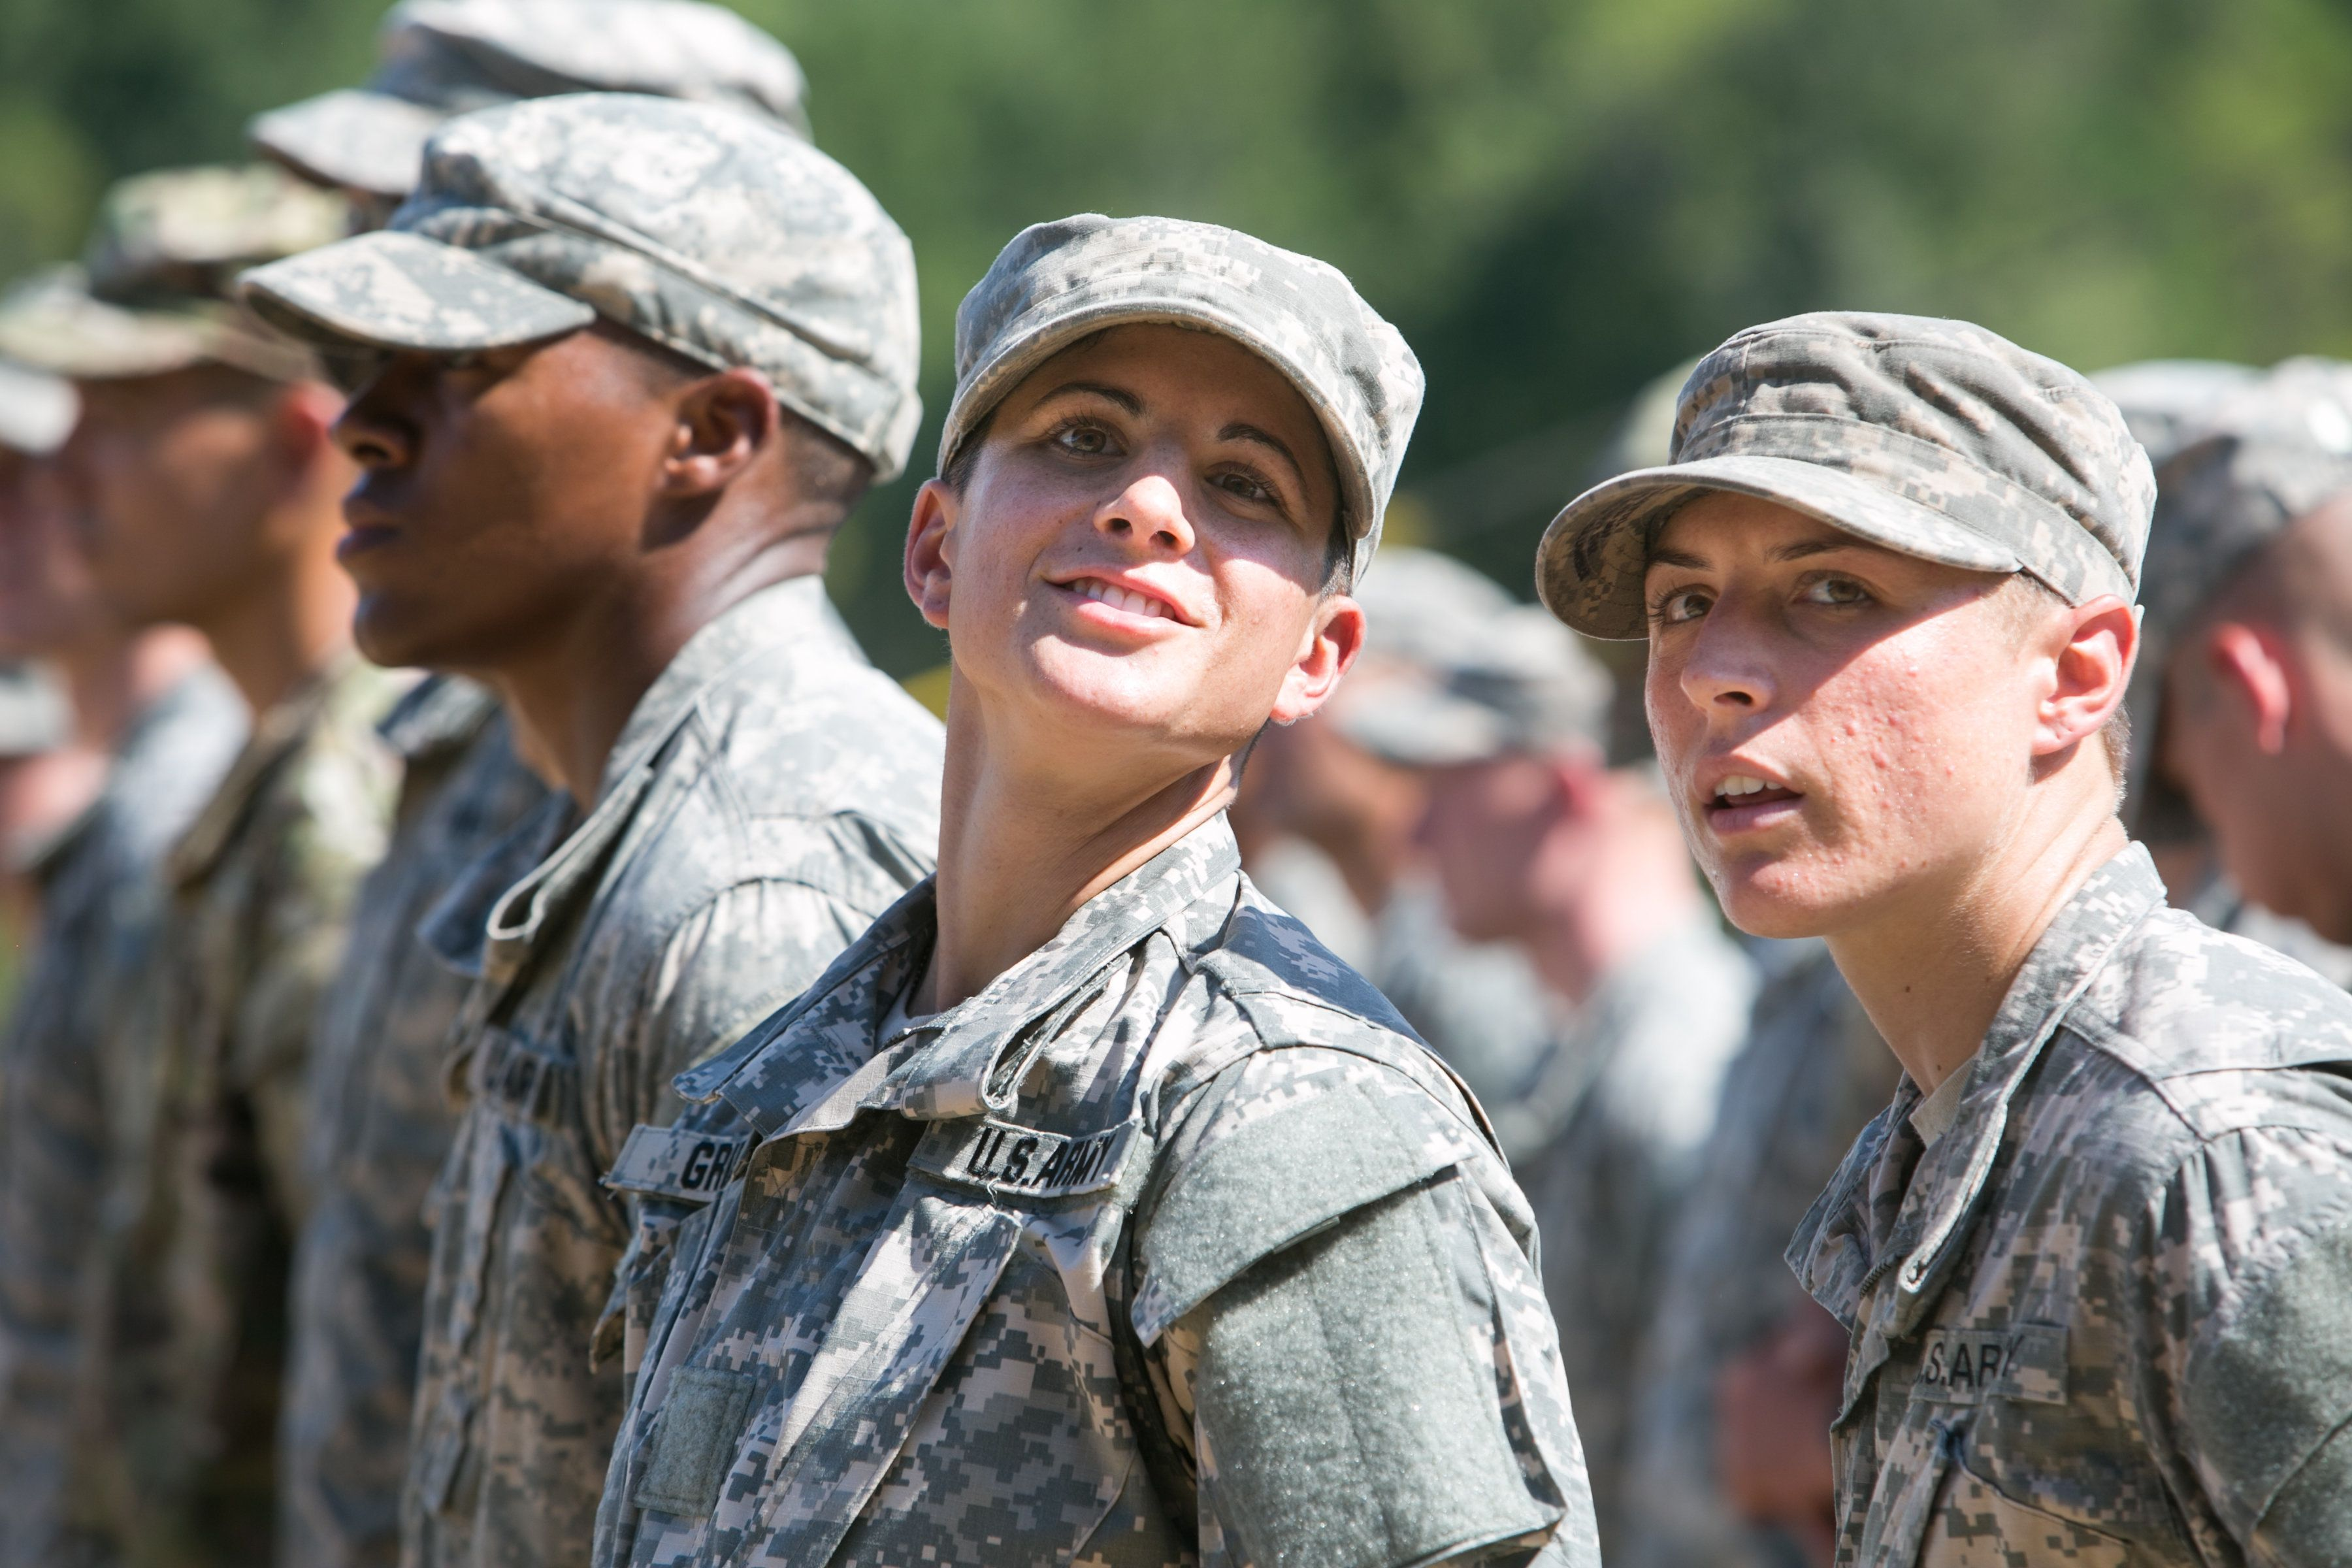 FORT BENNING, GA - AUGUST 21:  Capt. Kristen Griest (left) and 1st Lt.  Shaye Haver look on during the graduation ceremony of the United States Army's Ranger School on August 21, 2015 at Fort Benning, Georgia . Griest and Haver are the first women ever to successfully complete the U.S. Army's Ranger School.  (Photo by Jessica McGowan/Getty Images)